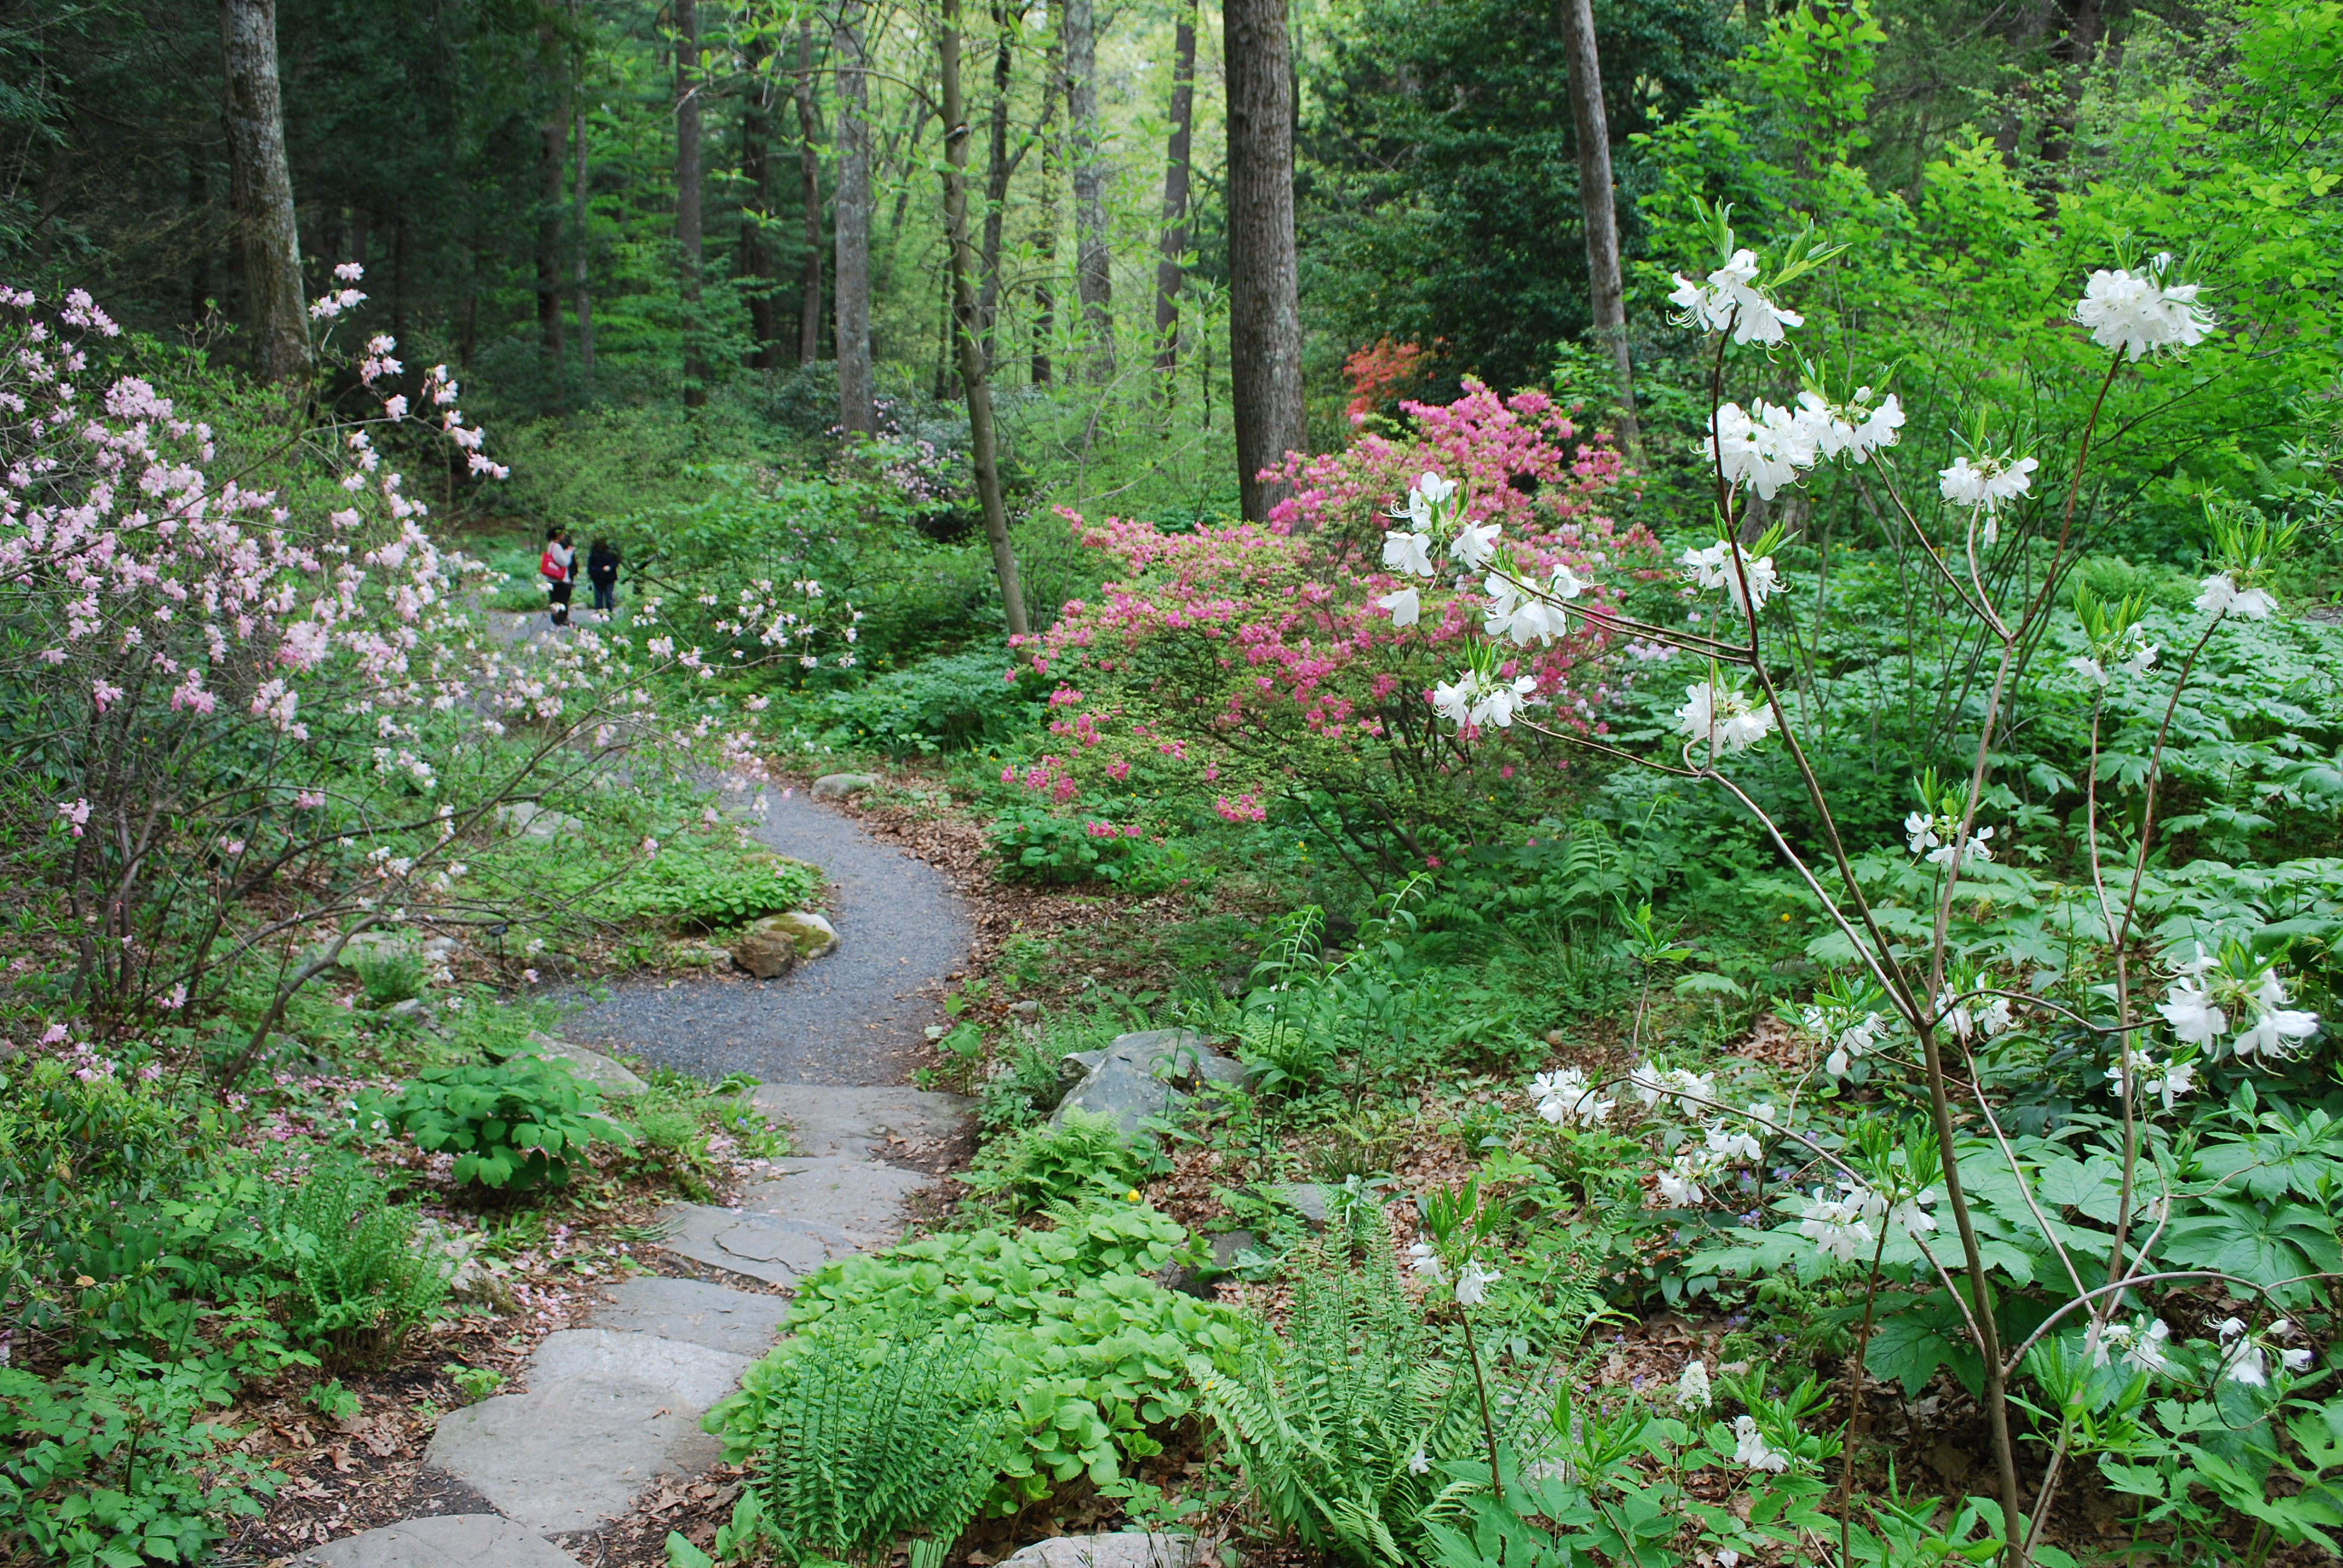 Landscaping Backyard With Woods : The new england wild flower society s garden in woods full